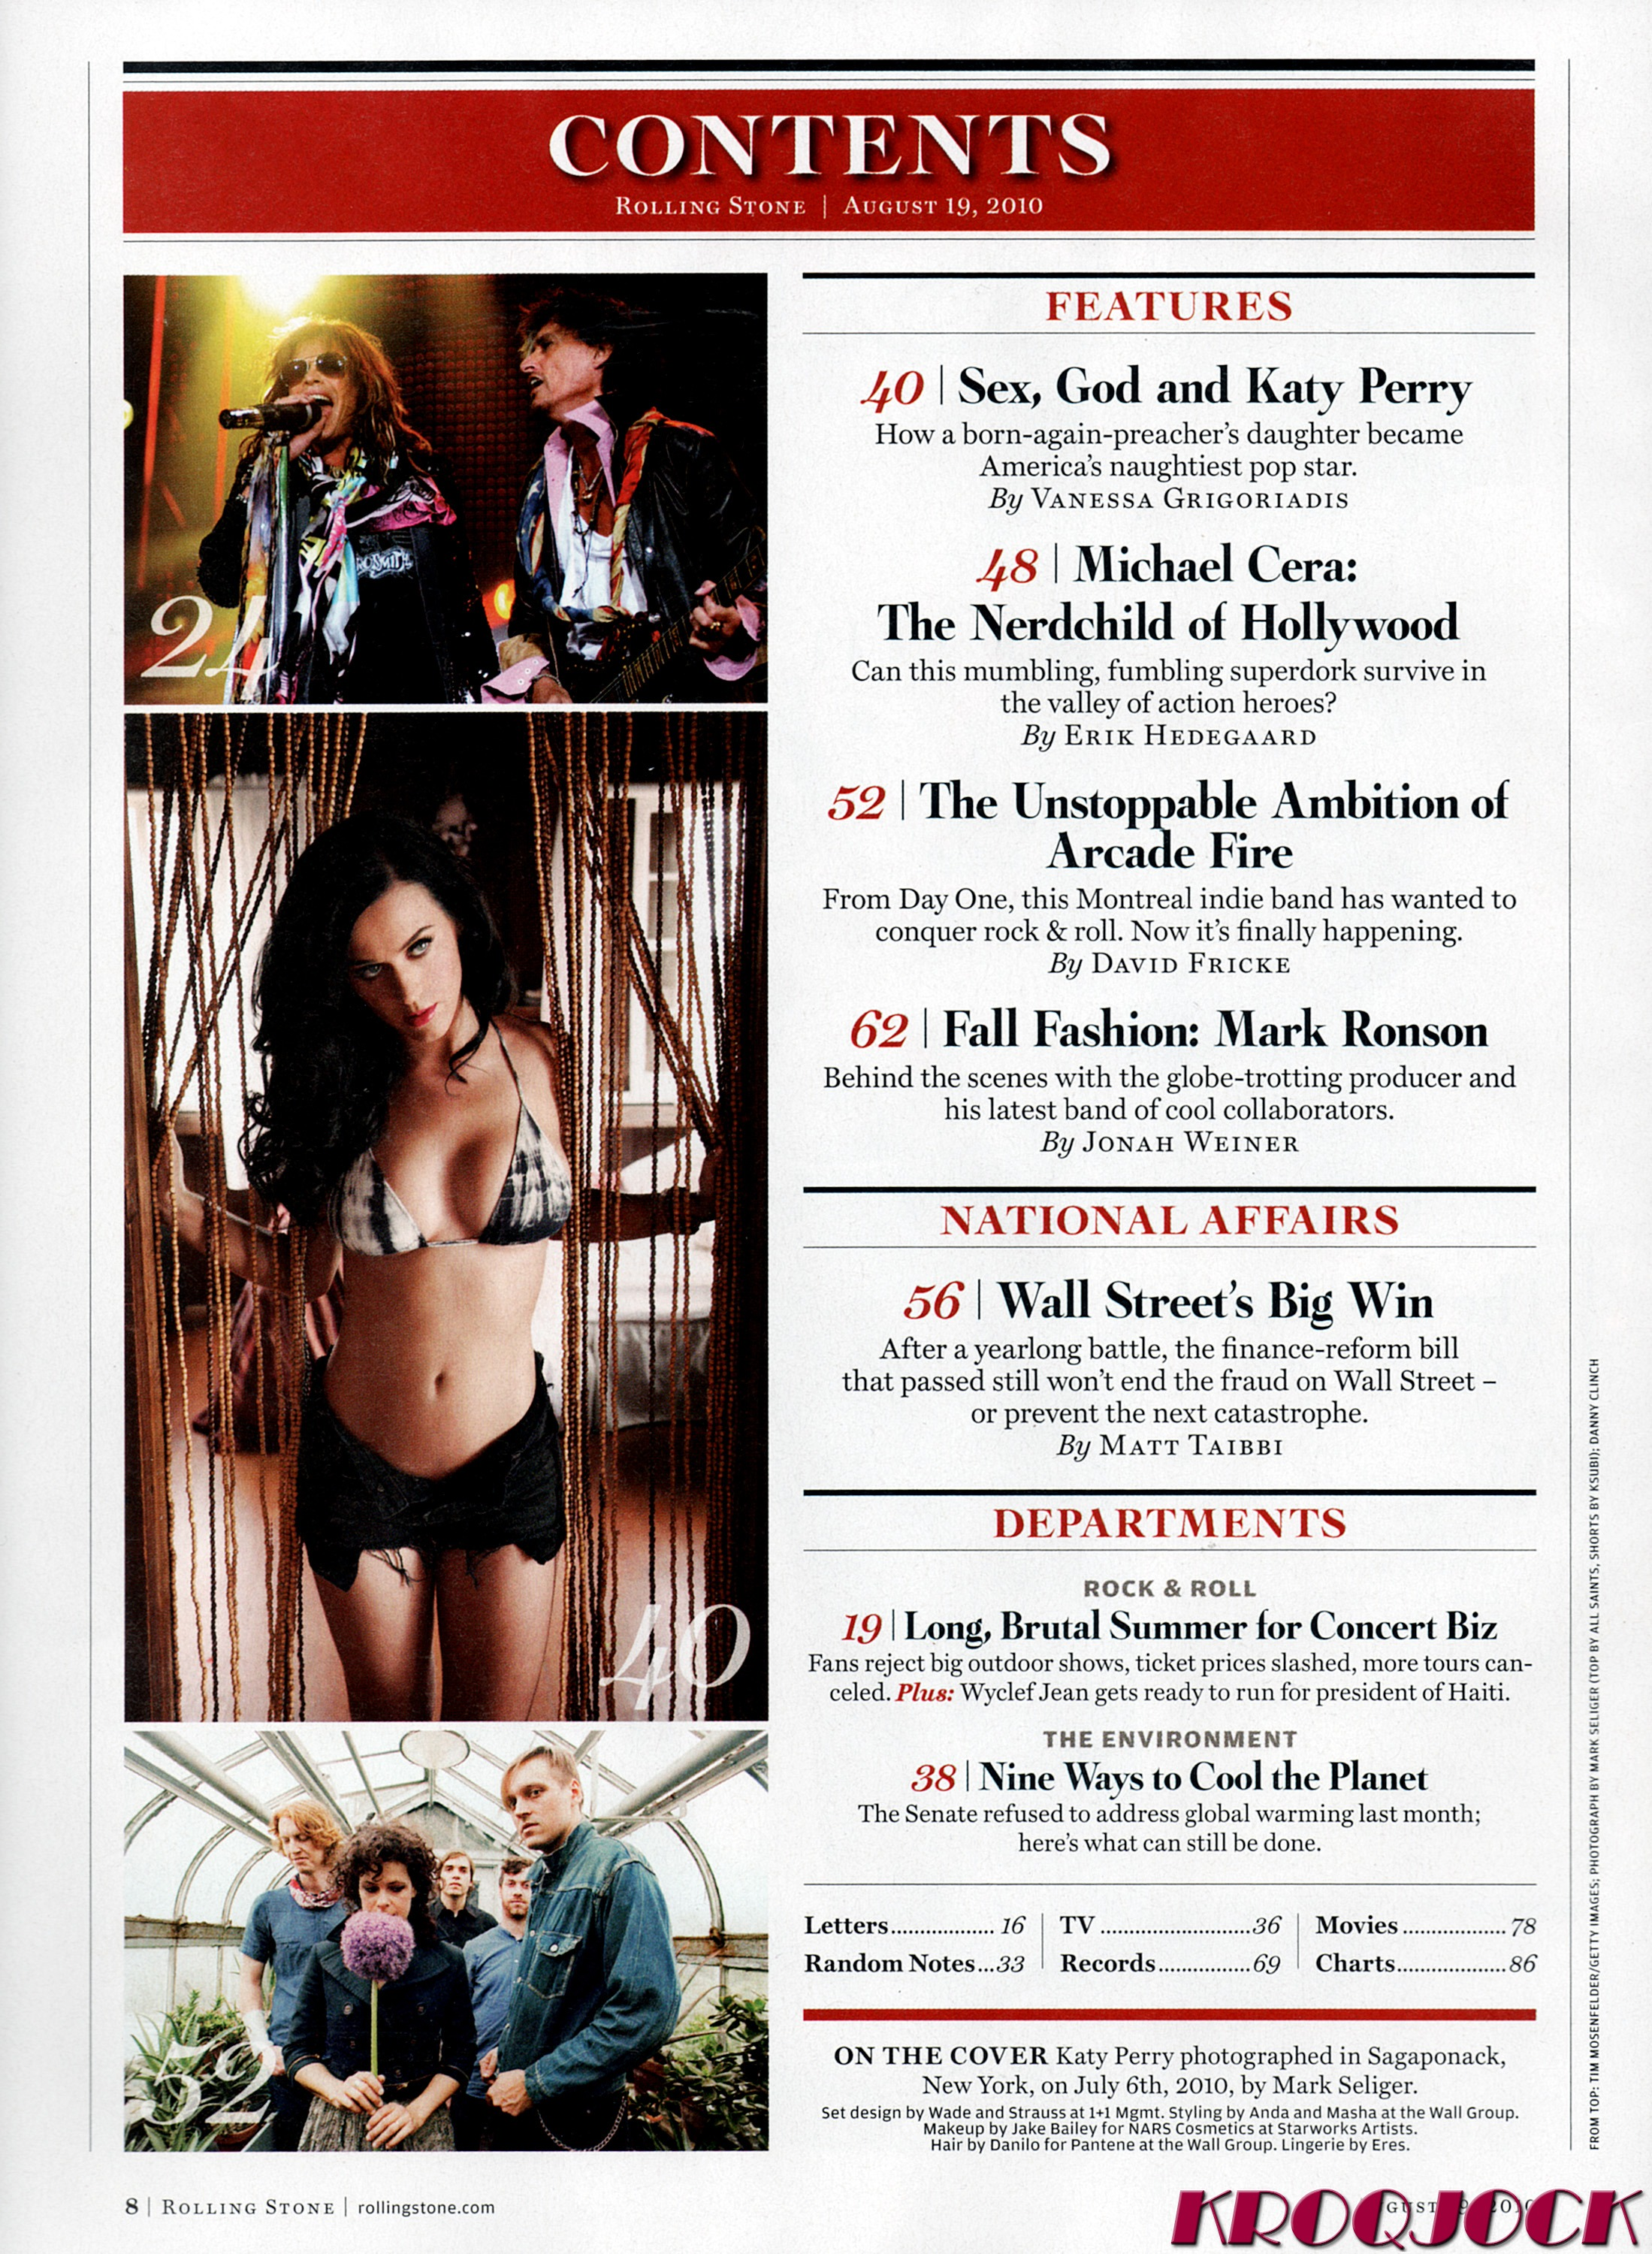 07140_Celebutopia_NET.Katy_Perry.ROLLING_STONE.Issue_1111.HQ.2_122_472lo.jpg